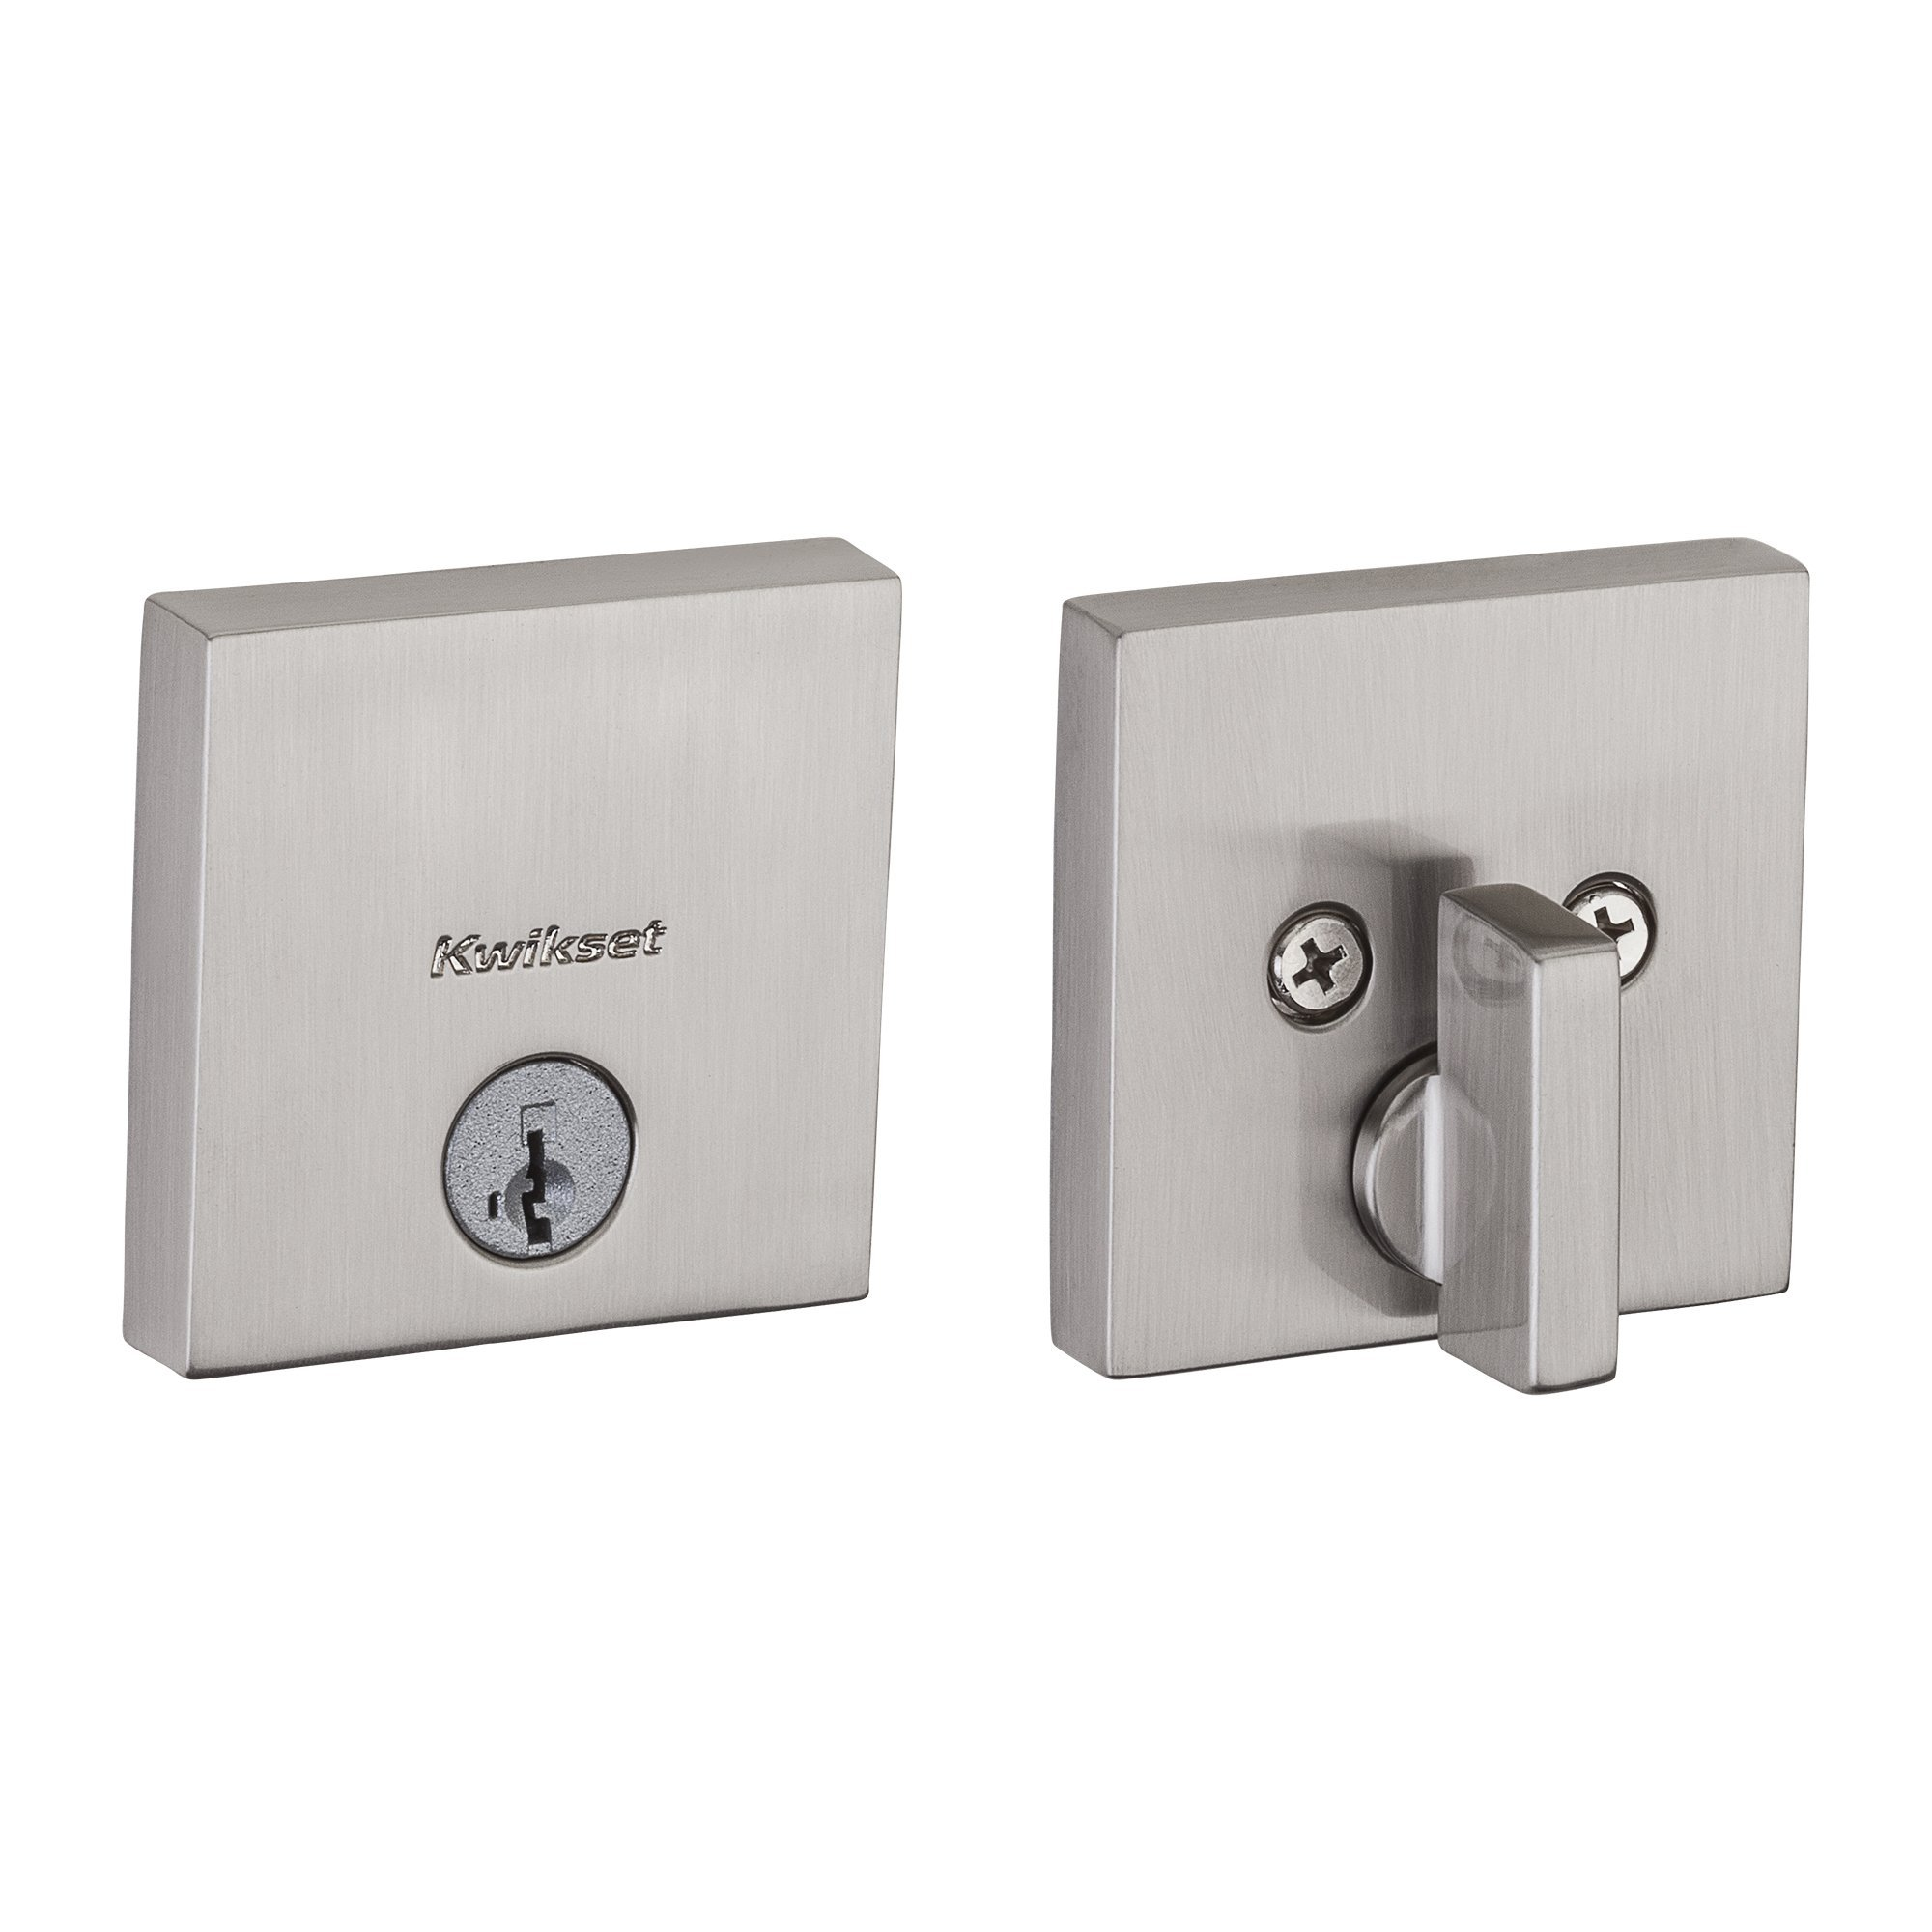 Kwikset 258 Downtown Low Profile Square Contemporary Deadbolt featuring SmartKey in Satin Nickel